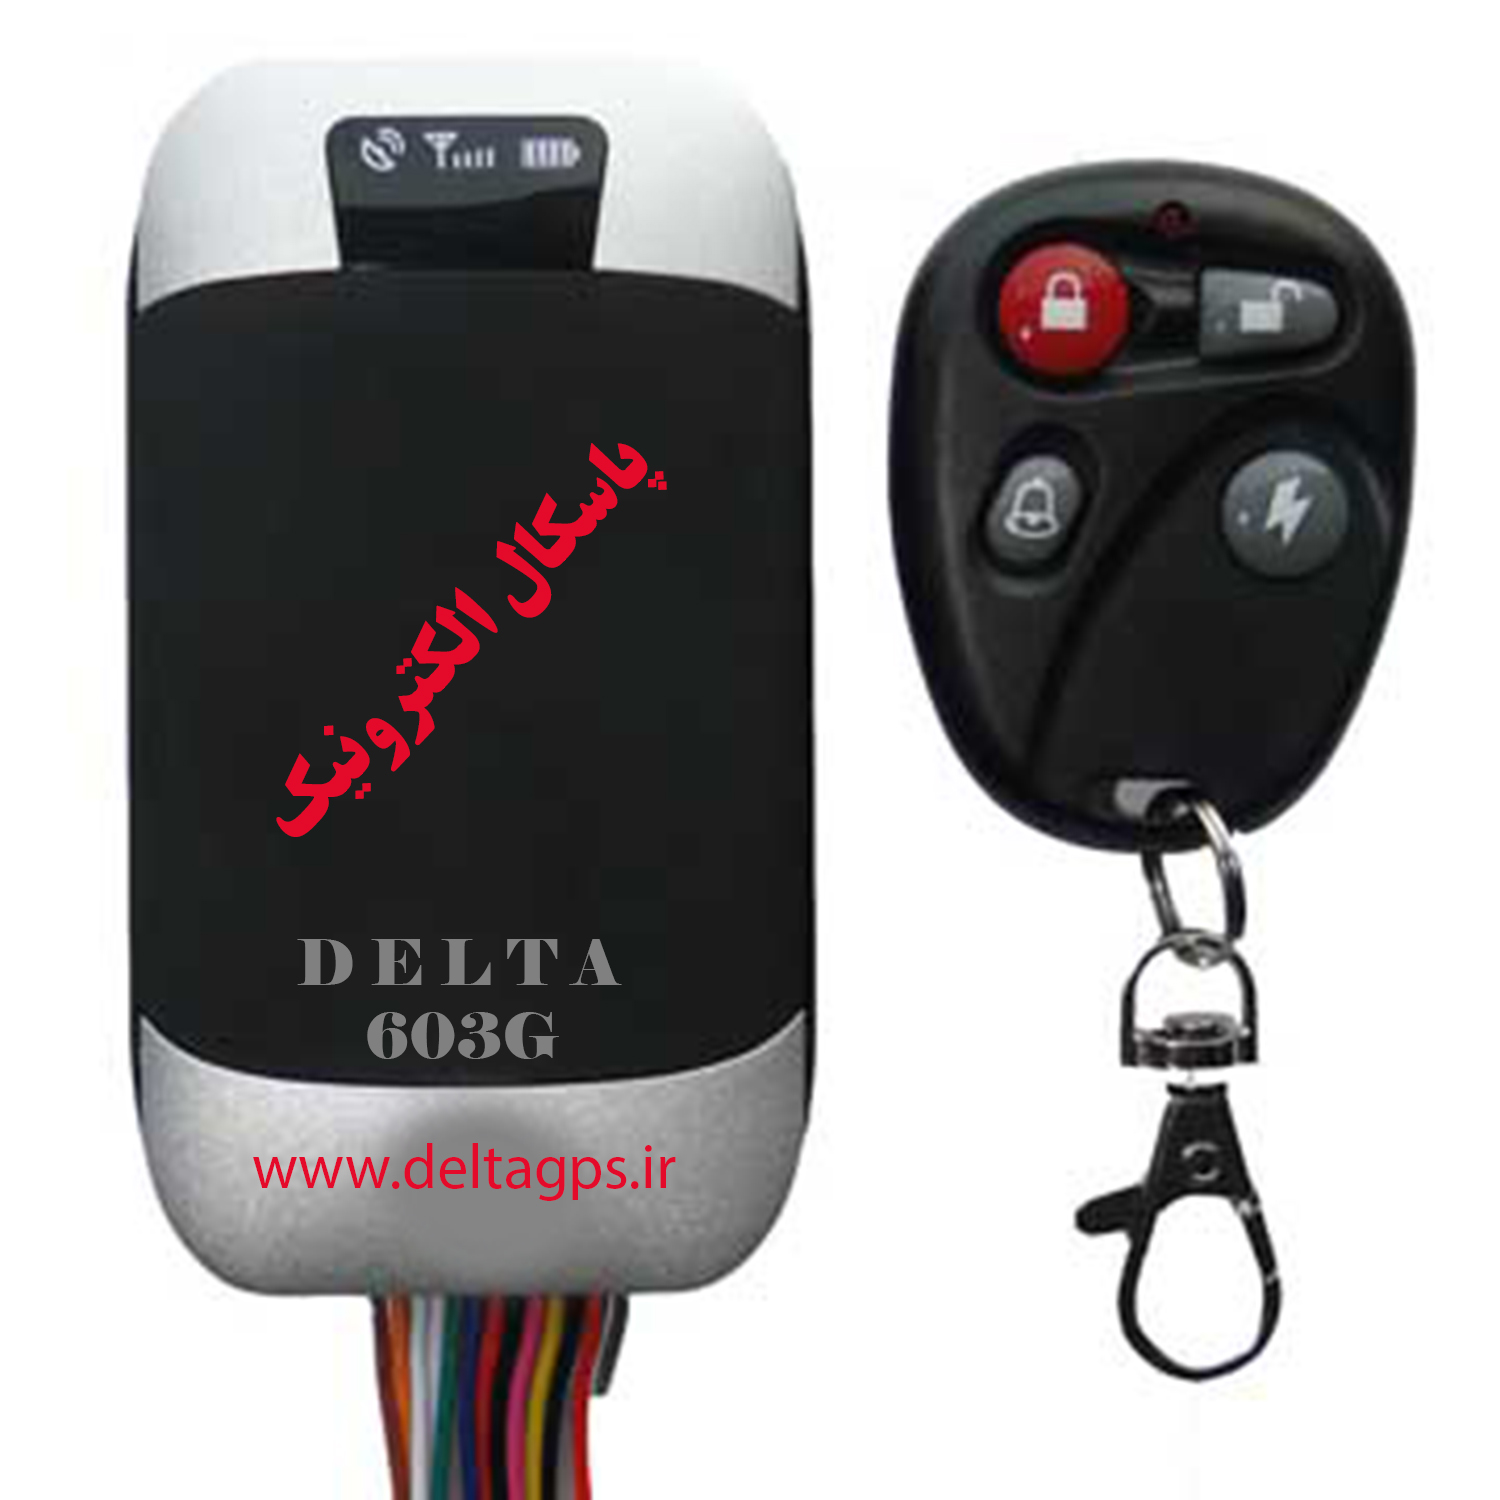 DELTA GPS vehicle tracker GPS603-H